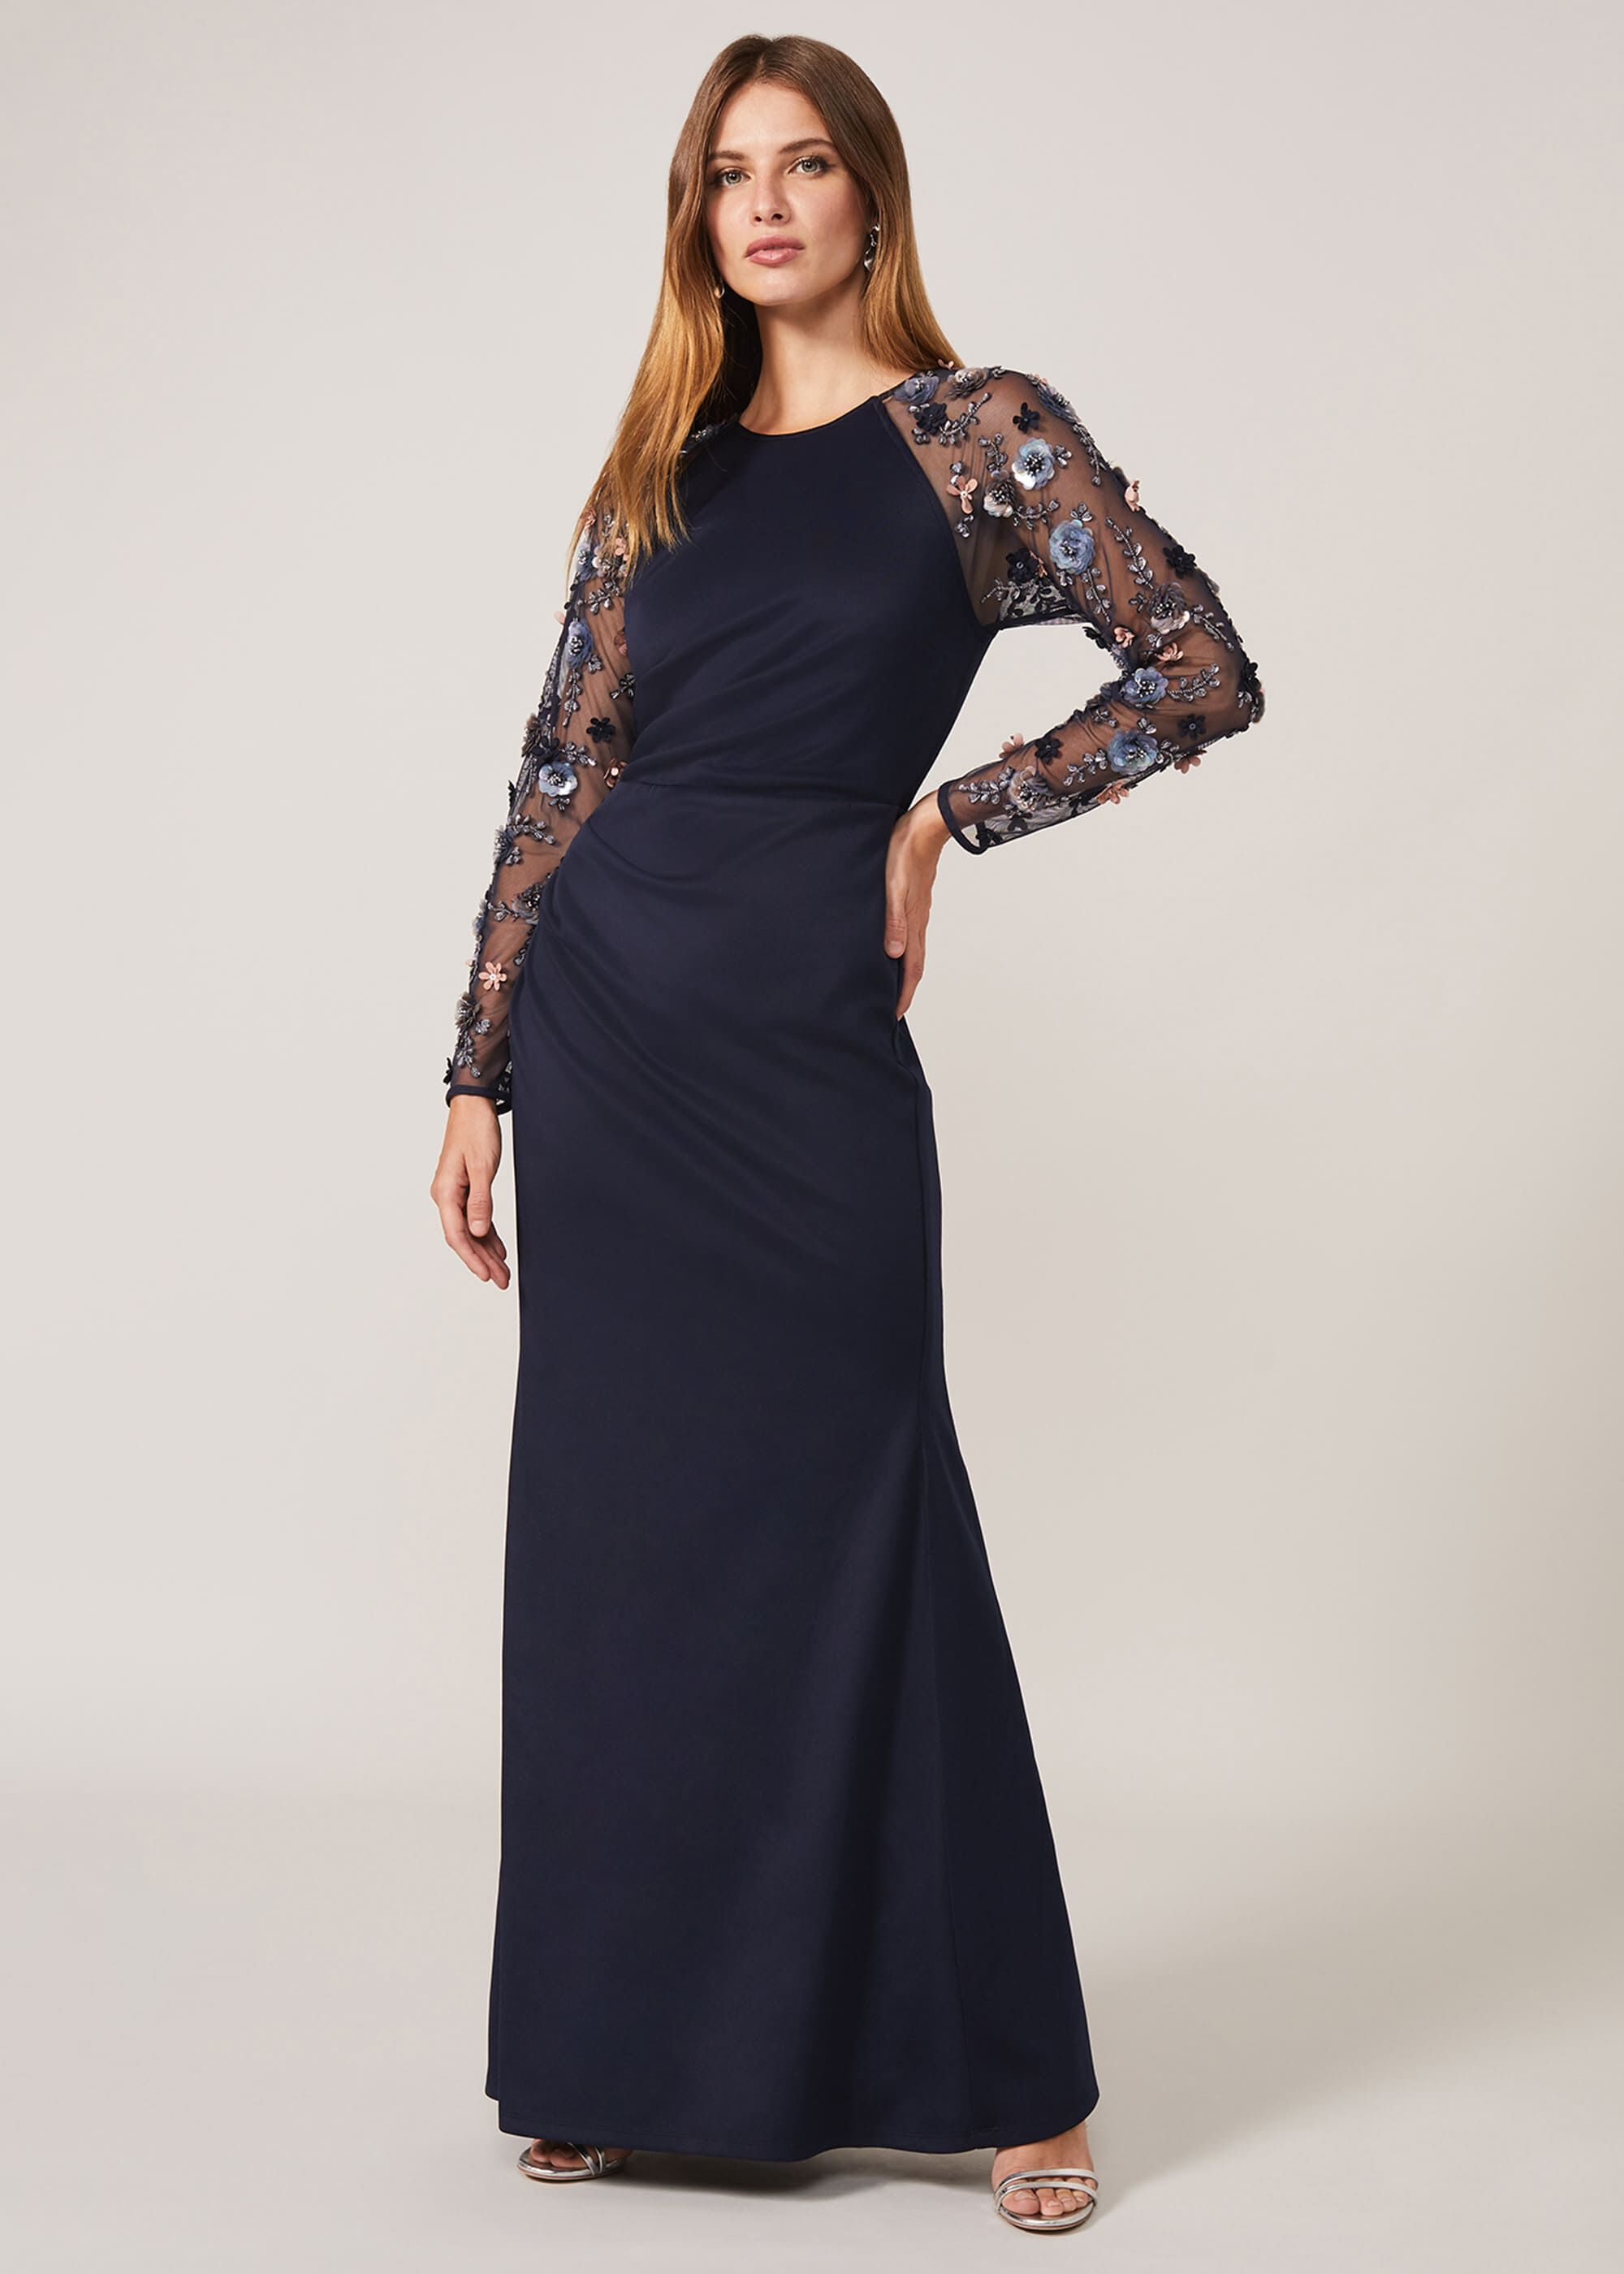 Phase Eight Jody Sequin Sleeve Maxi Dress, Blue, Occasion Dress